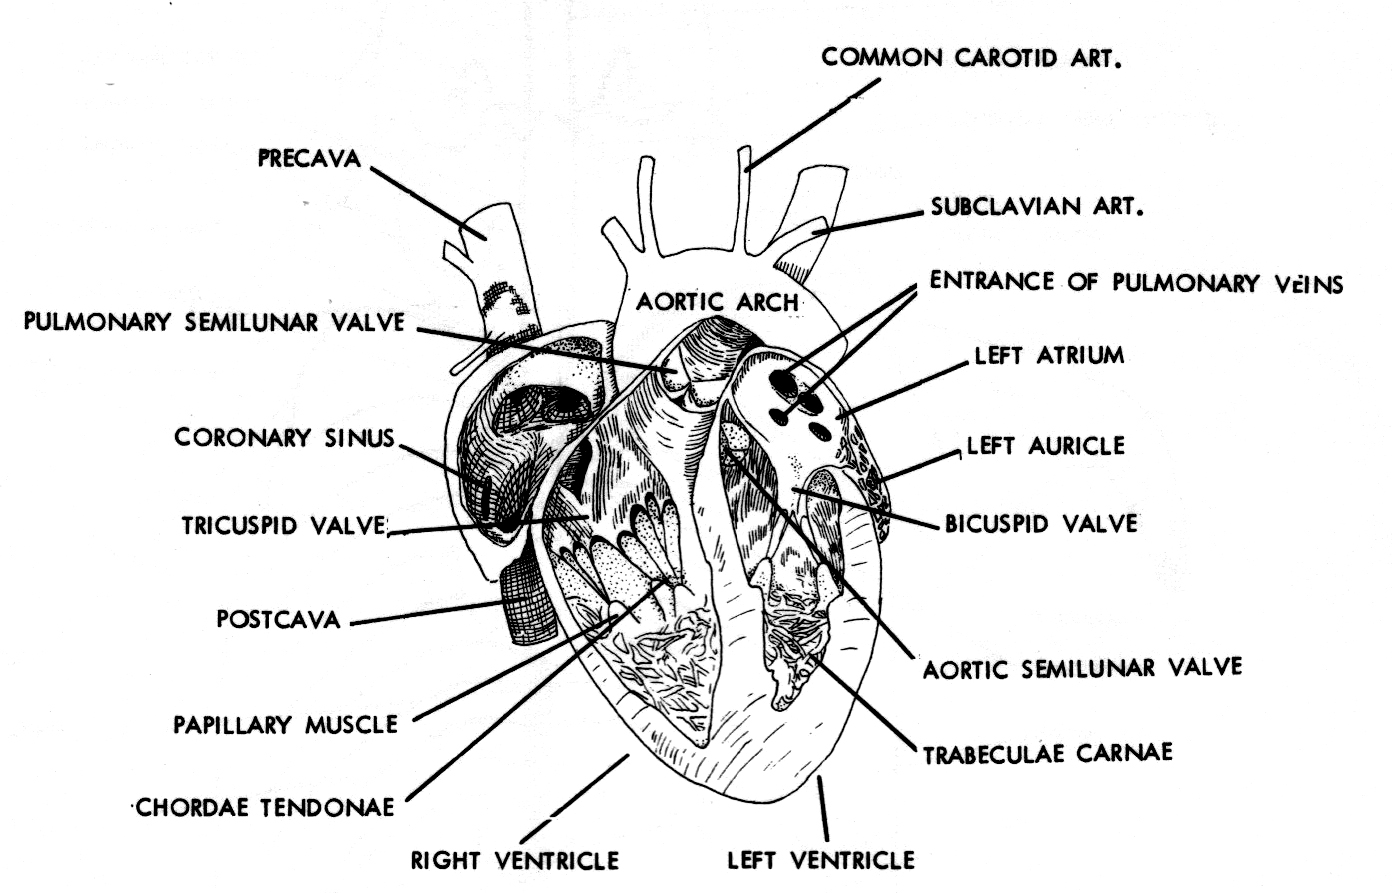 Posterior Heart Diagram Labeled Black And White, Posterior